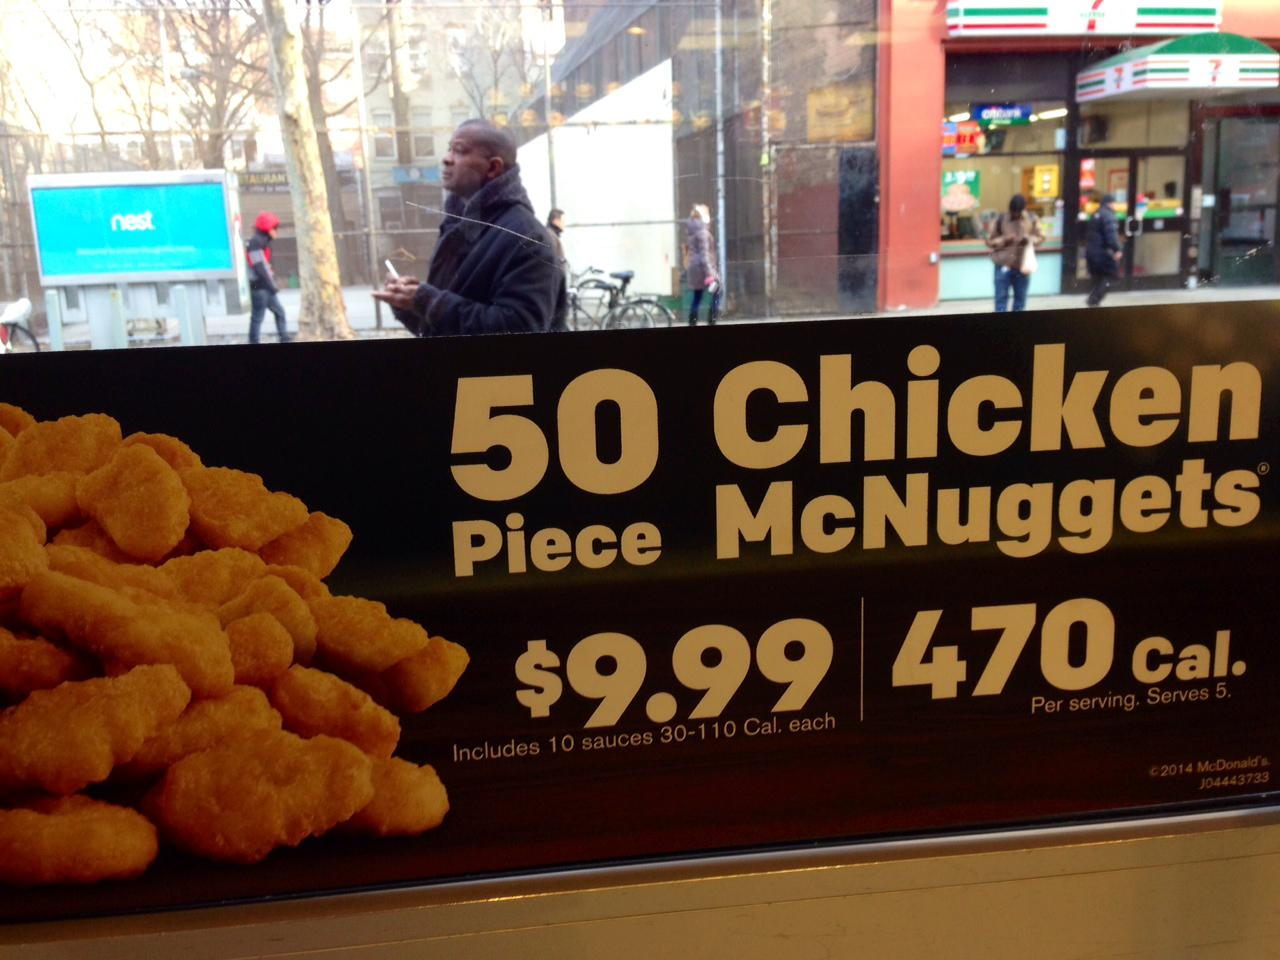 McDonald's Chicken McNuggets: Check out